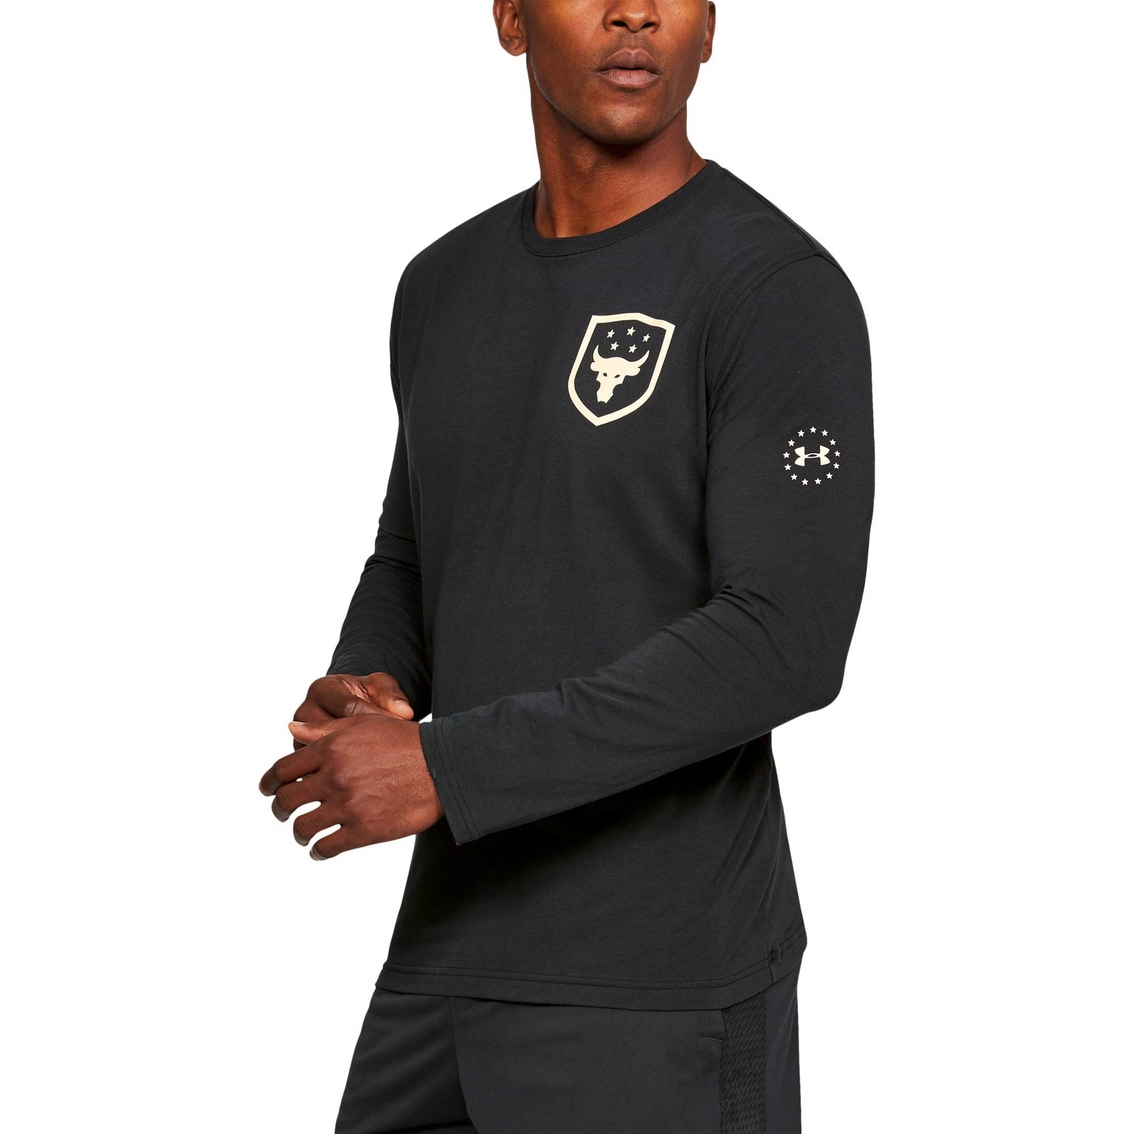 the rock under armour t shirt